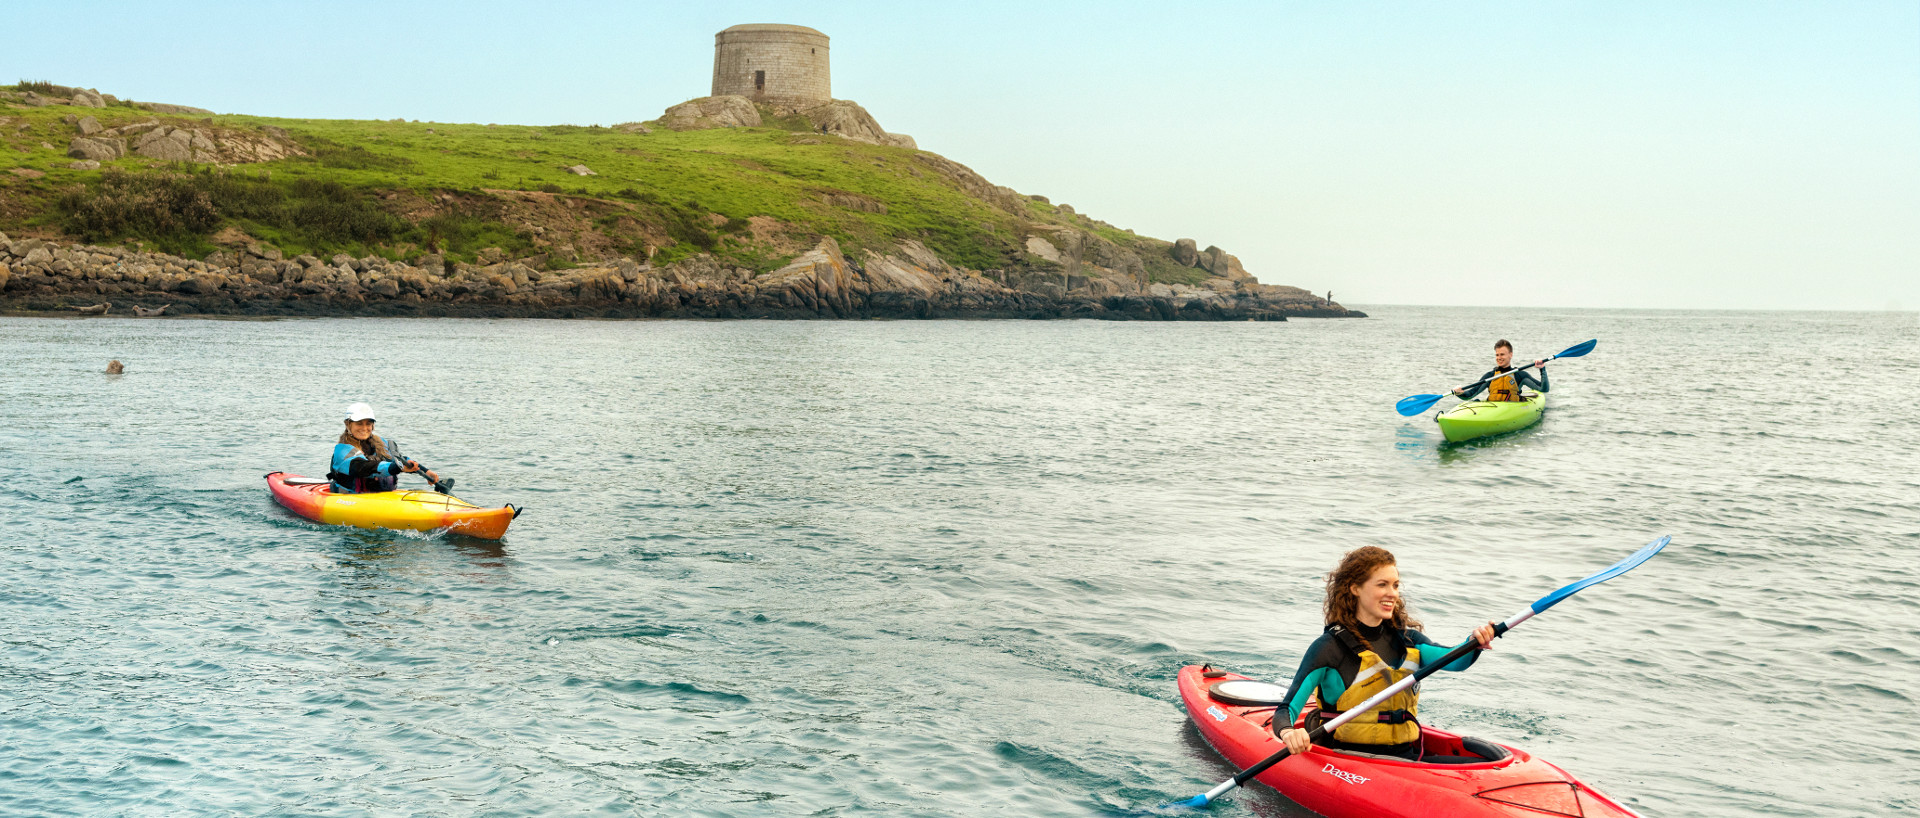 Guests of PREMIER SUITES kayaking in Dalkey